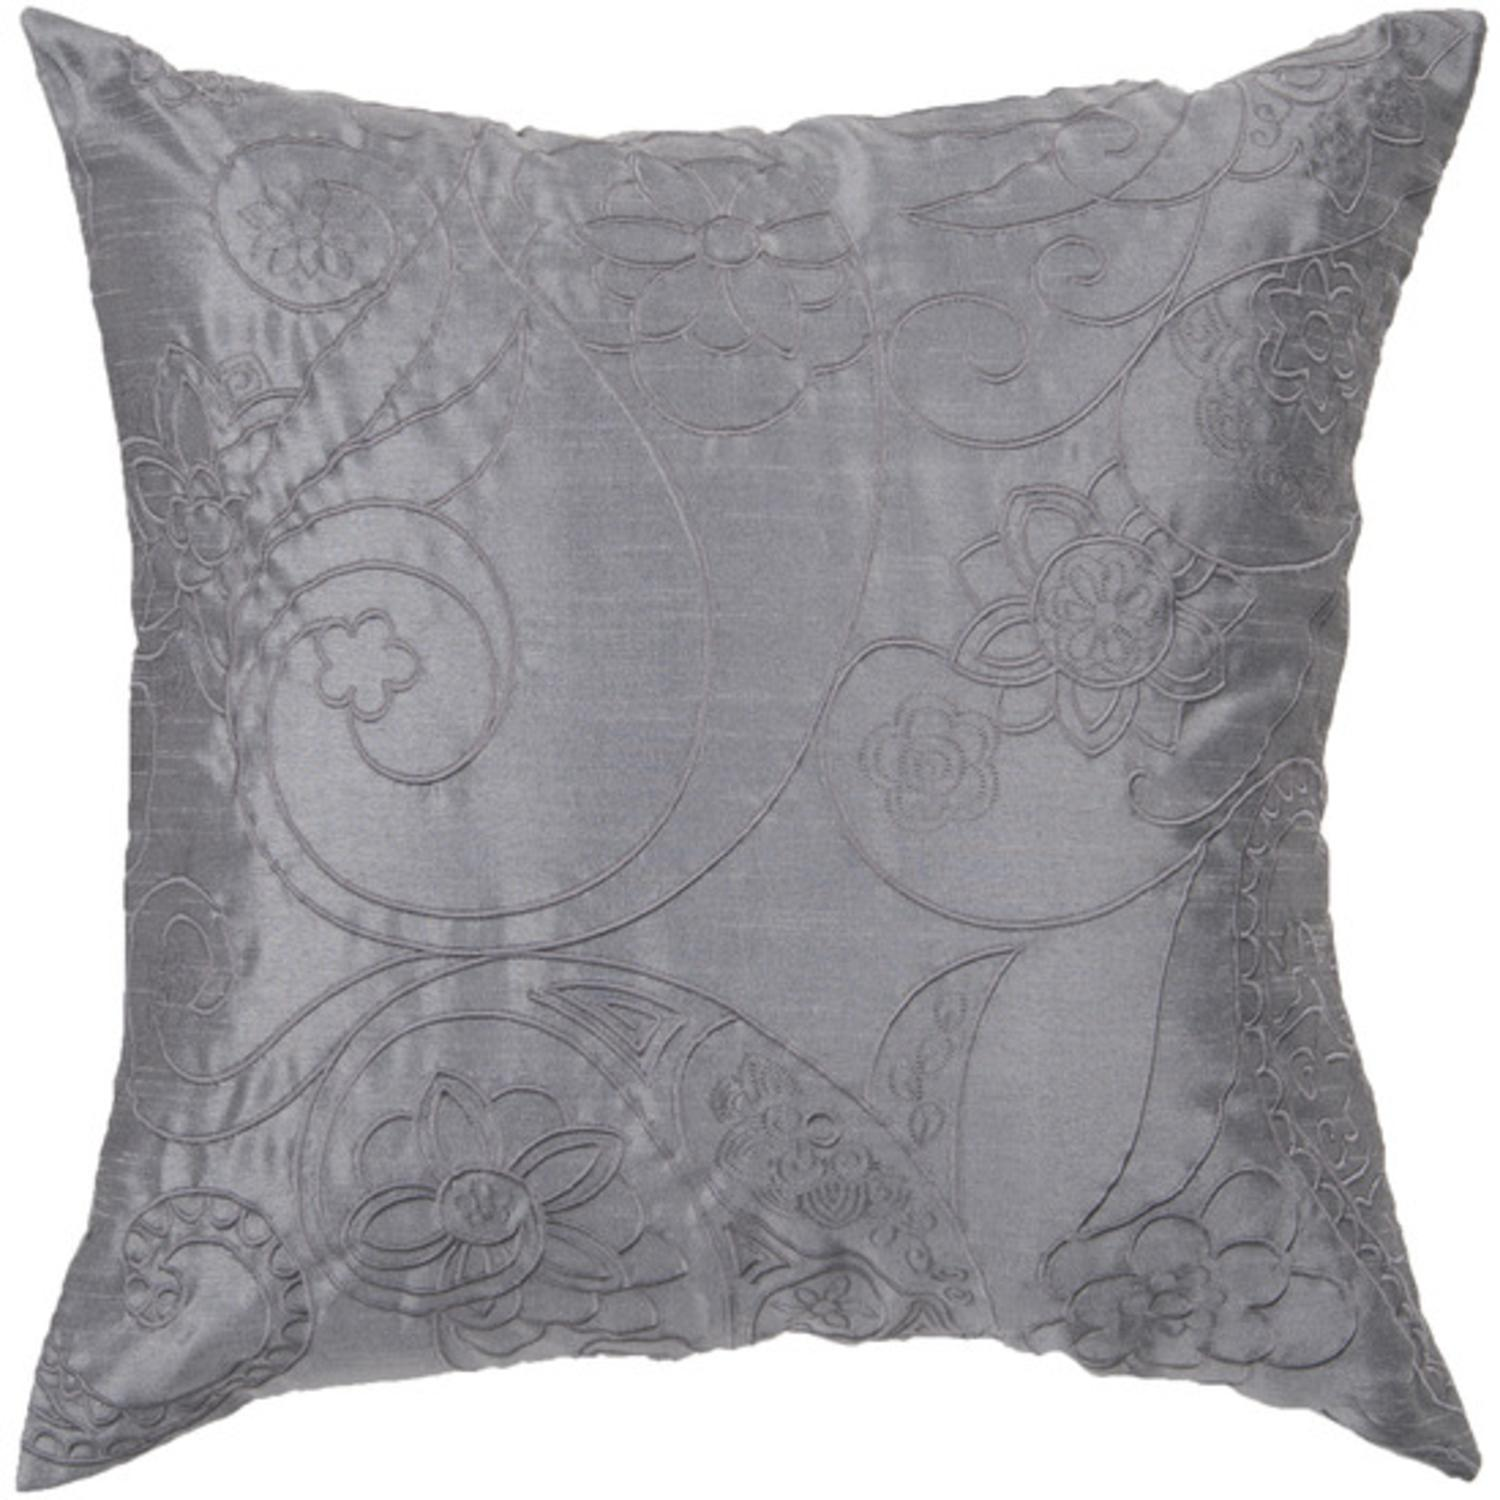 "18"" Slate Blue Floral Paisley Swirl Decorative Down Throw Pillow"